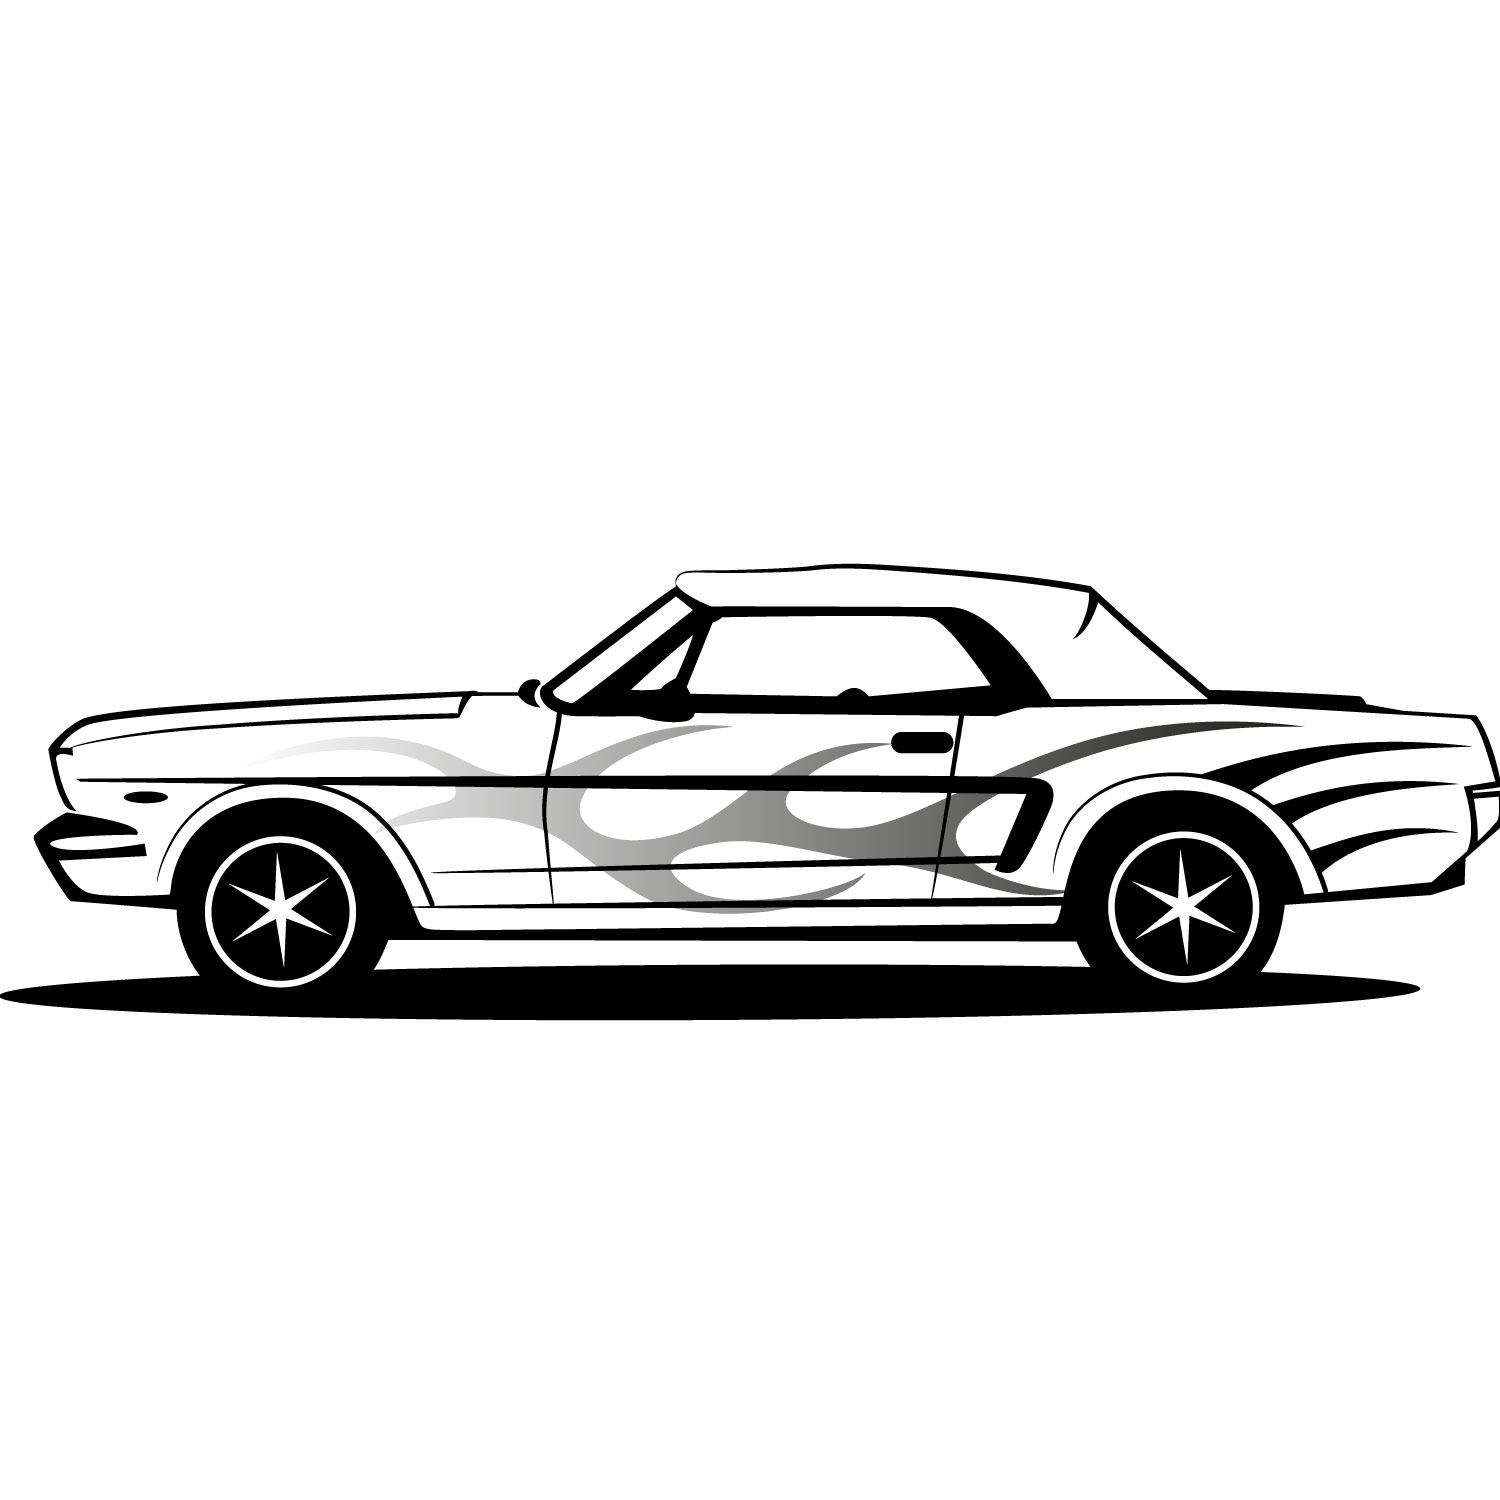 16 Mustang Car Vector Images